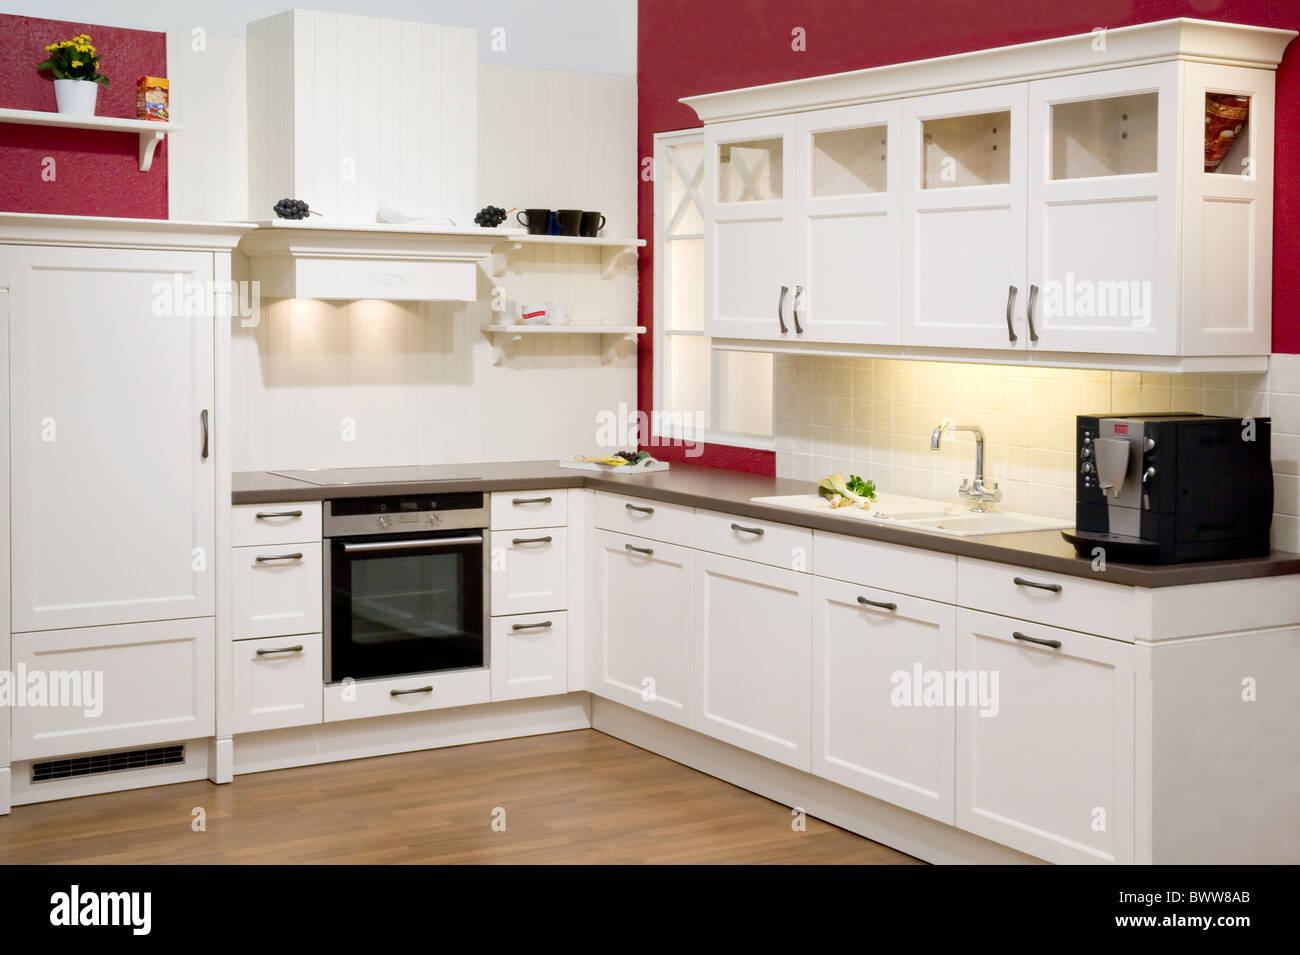 Moderne Einbauküche Modern fitted kitchen Stock Photo: 33132131 - Alamy